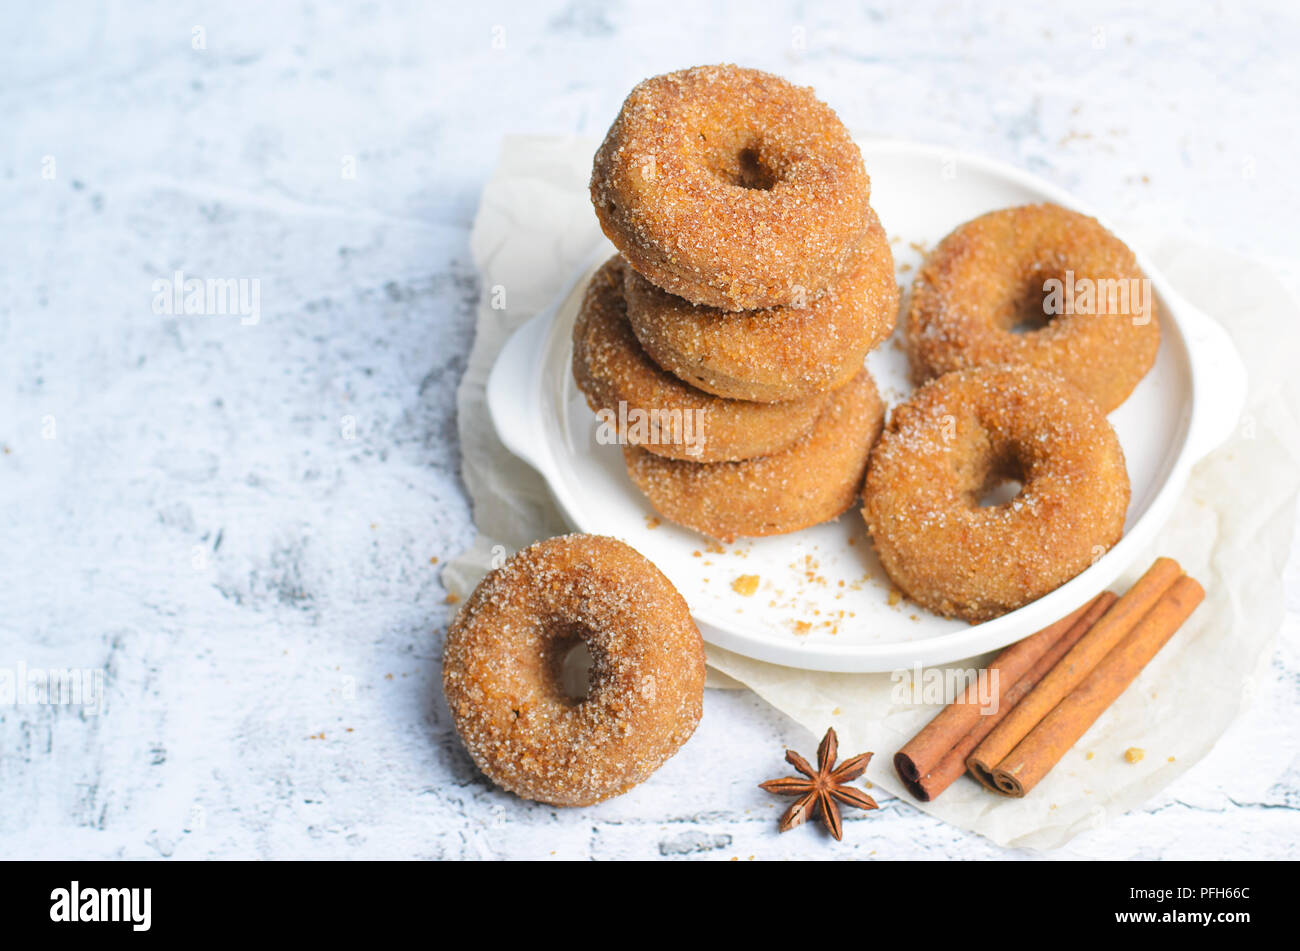 Cinnamon Donuts, Freshly Baked Homemade Doughnuts Covered in Sugar and Cinnamon Mixture,